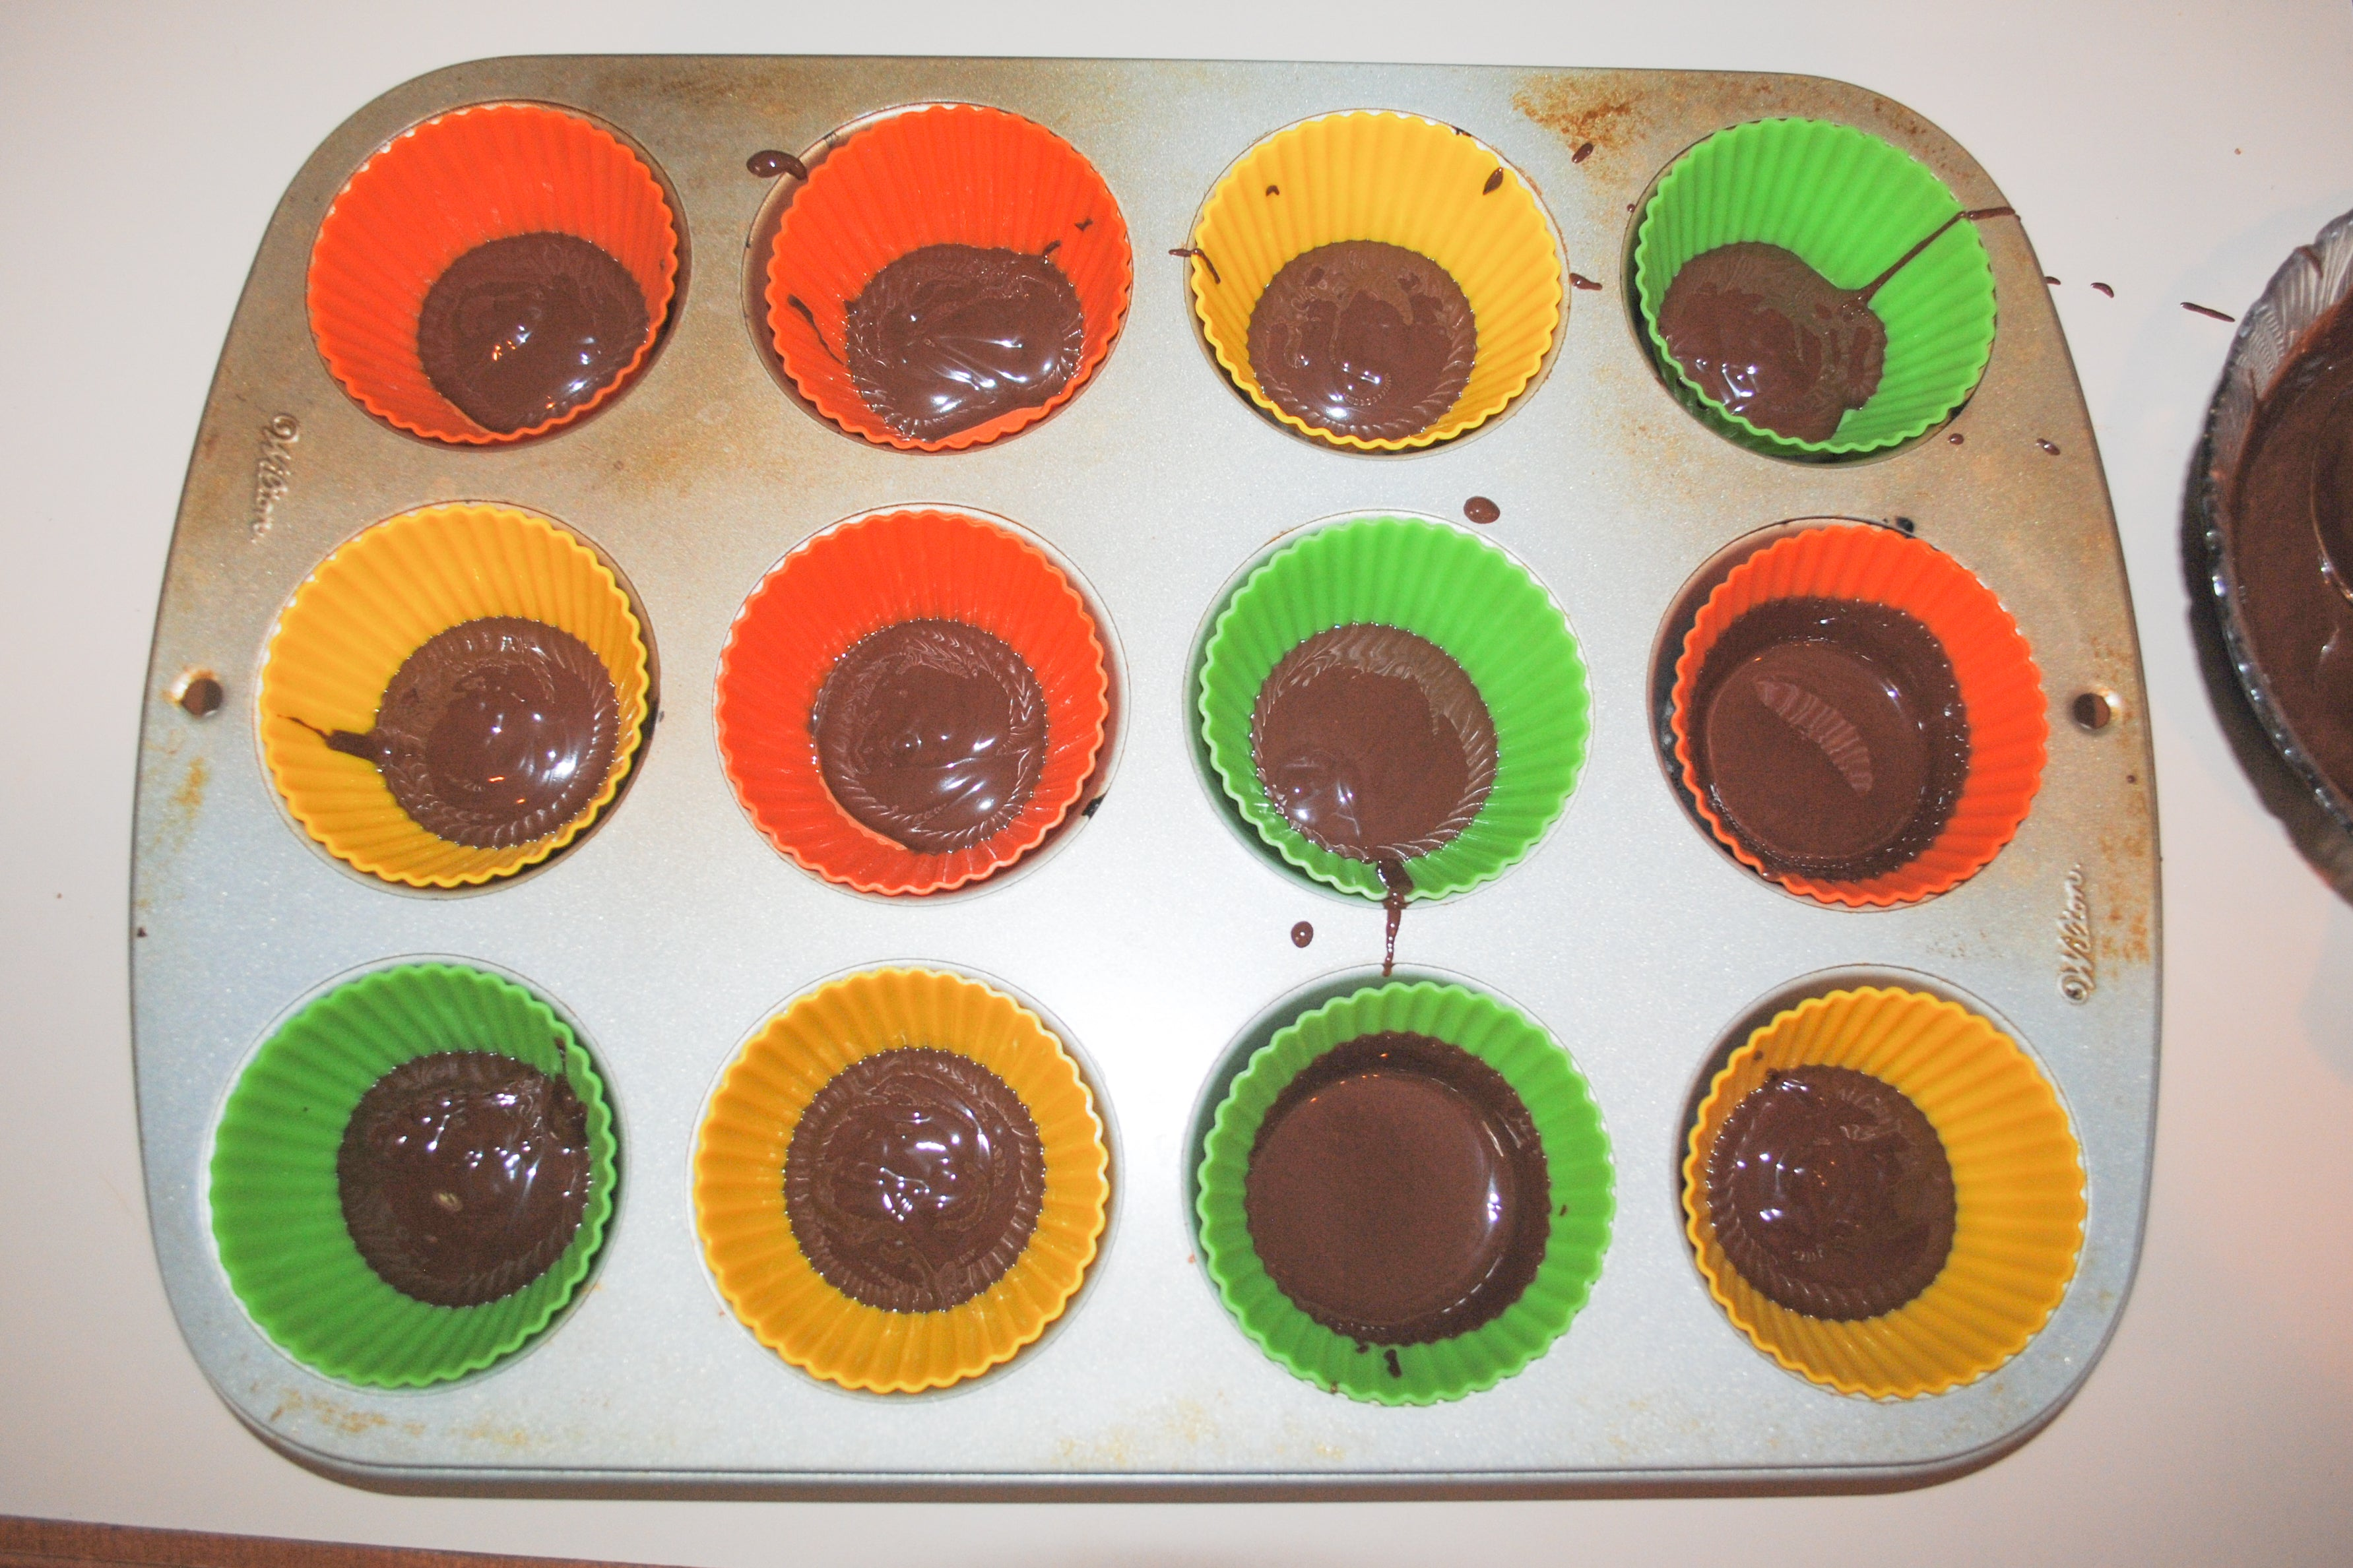 Double Chocolate Peanut Butter Cups - Add 1 tablespoon of melted chocolate to the bottom of each muffin liner